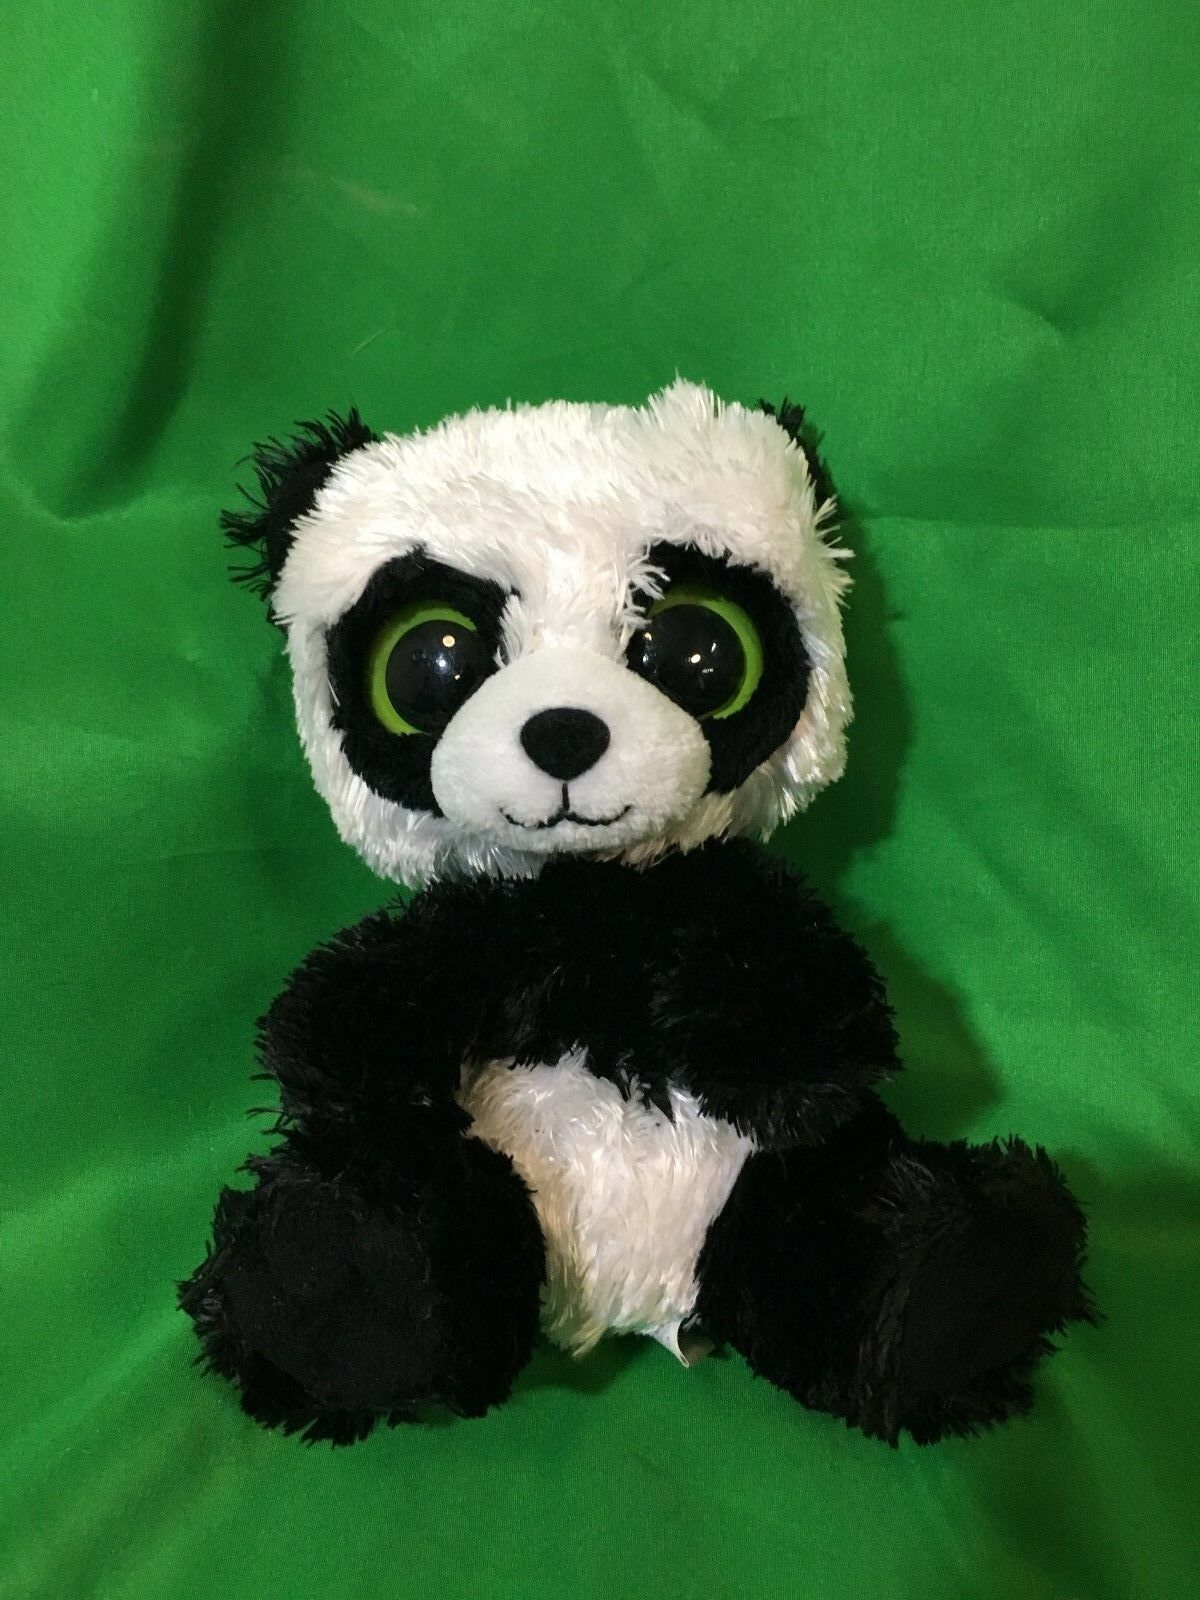 TY BEANIE BOOS BOO BAMBOO FIRST 1st UK VERSION RELEASE 2009 MINT